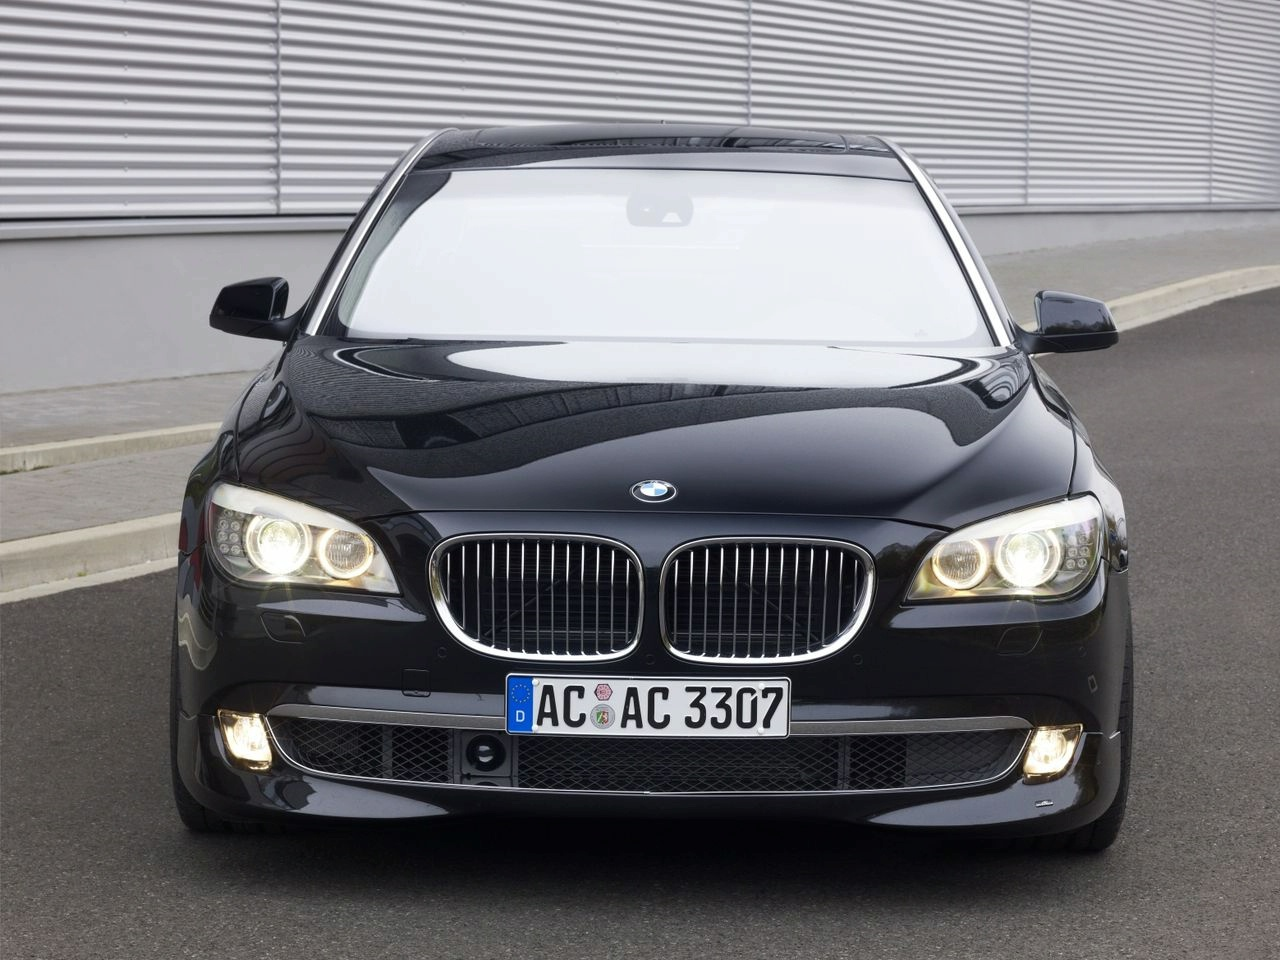 My Perfect Bmw 7 Series 3dtuning Probably The Best Car Configurator